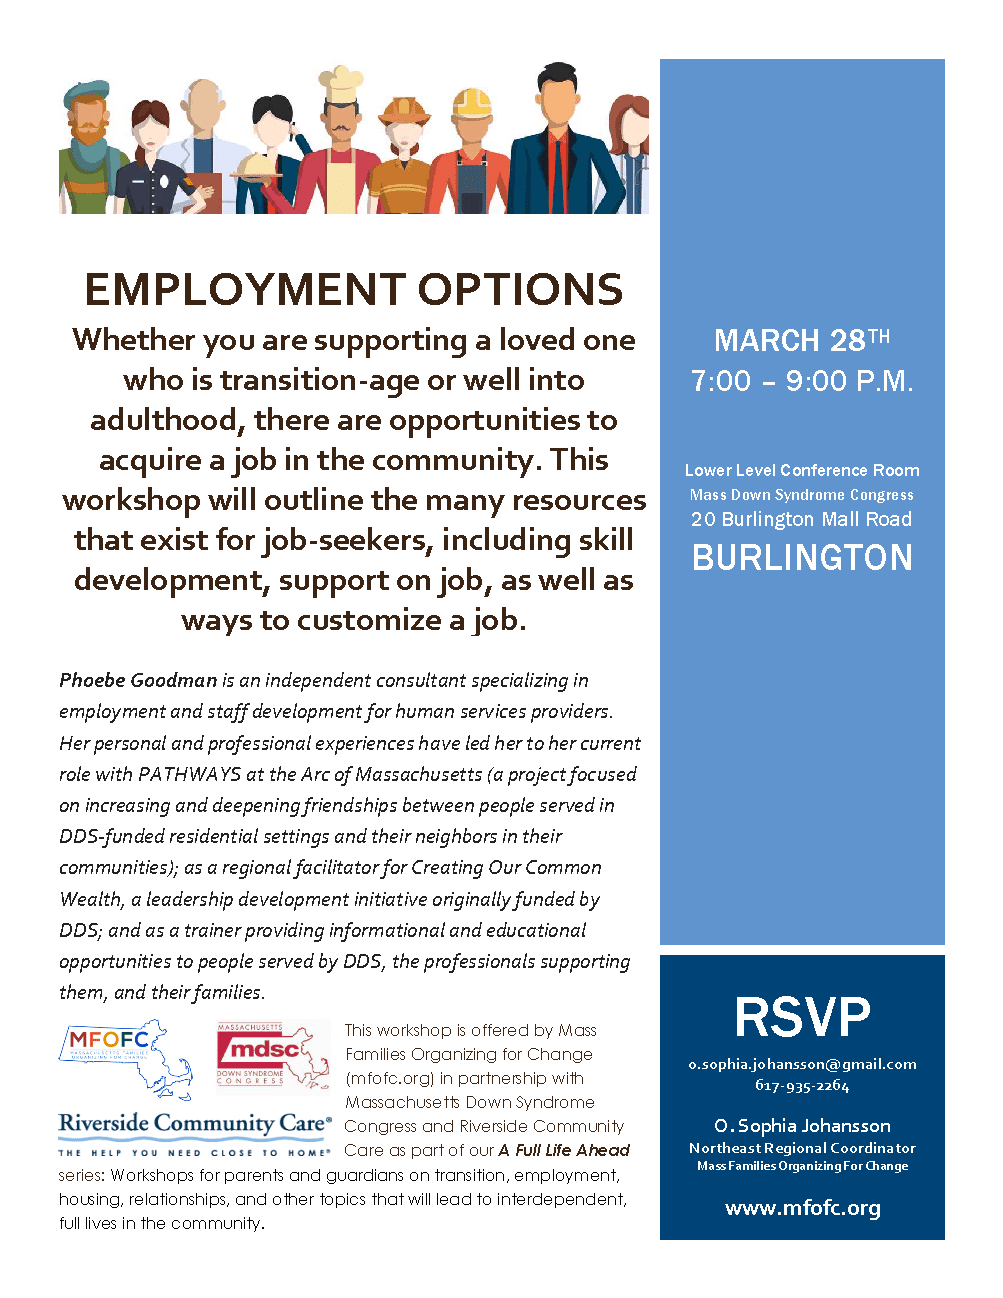 EMPLOYMENT OPTIONS Whether you are supporting a loved one who is transition-age or well into adulthood, there are opportunities to acquire a job in the community. This workshop will outline the many resources that exist for job-seekers, including skill development, support on job, as well as ways to customize a job. Phoebe Goodman is an independent consultant specializing in employment and staff development for human services providers. Her personal and professional experiences have led her to her current role with PATHWAYS at the Arc of Massachusetts (a project focused on increasing and deepening friendships between people served in DDS-funded residential settings and their neighbors in their communities); as a regional facilitator for Creating Our Common Wealth, a leadership development initiative originally funded by DDS; and as a trainer providing informational and educational opportunities to people served by DDS, the professionals supporting them, and their families. This workshop is offered by Mass Families Organizing for Change (mfofc.org) in partnership with Massachusetts Down Syndrome Congress and Riverside Community Care as part of our A Full Life Ahead series: Workshops for parents and guardians on transition, employment, housing, relationships, and other topics that will lead to interdependent, full lives in the community. MARCH 28TH 7:00 – 9:00 P.M. Lower Level Conference Room Mass Down Syndrome Congress 20 Burlington Mall Road BURLINGTON RSVP o.sophia.johansson@gmail.com 617-935-2264 O. Sophia Johansson Northeast Regional Coordinator Mass Families Organizing For Change www.mfofc.org